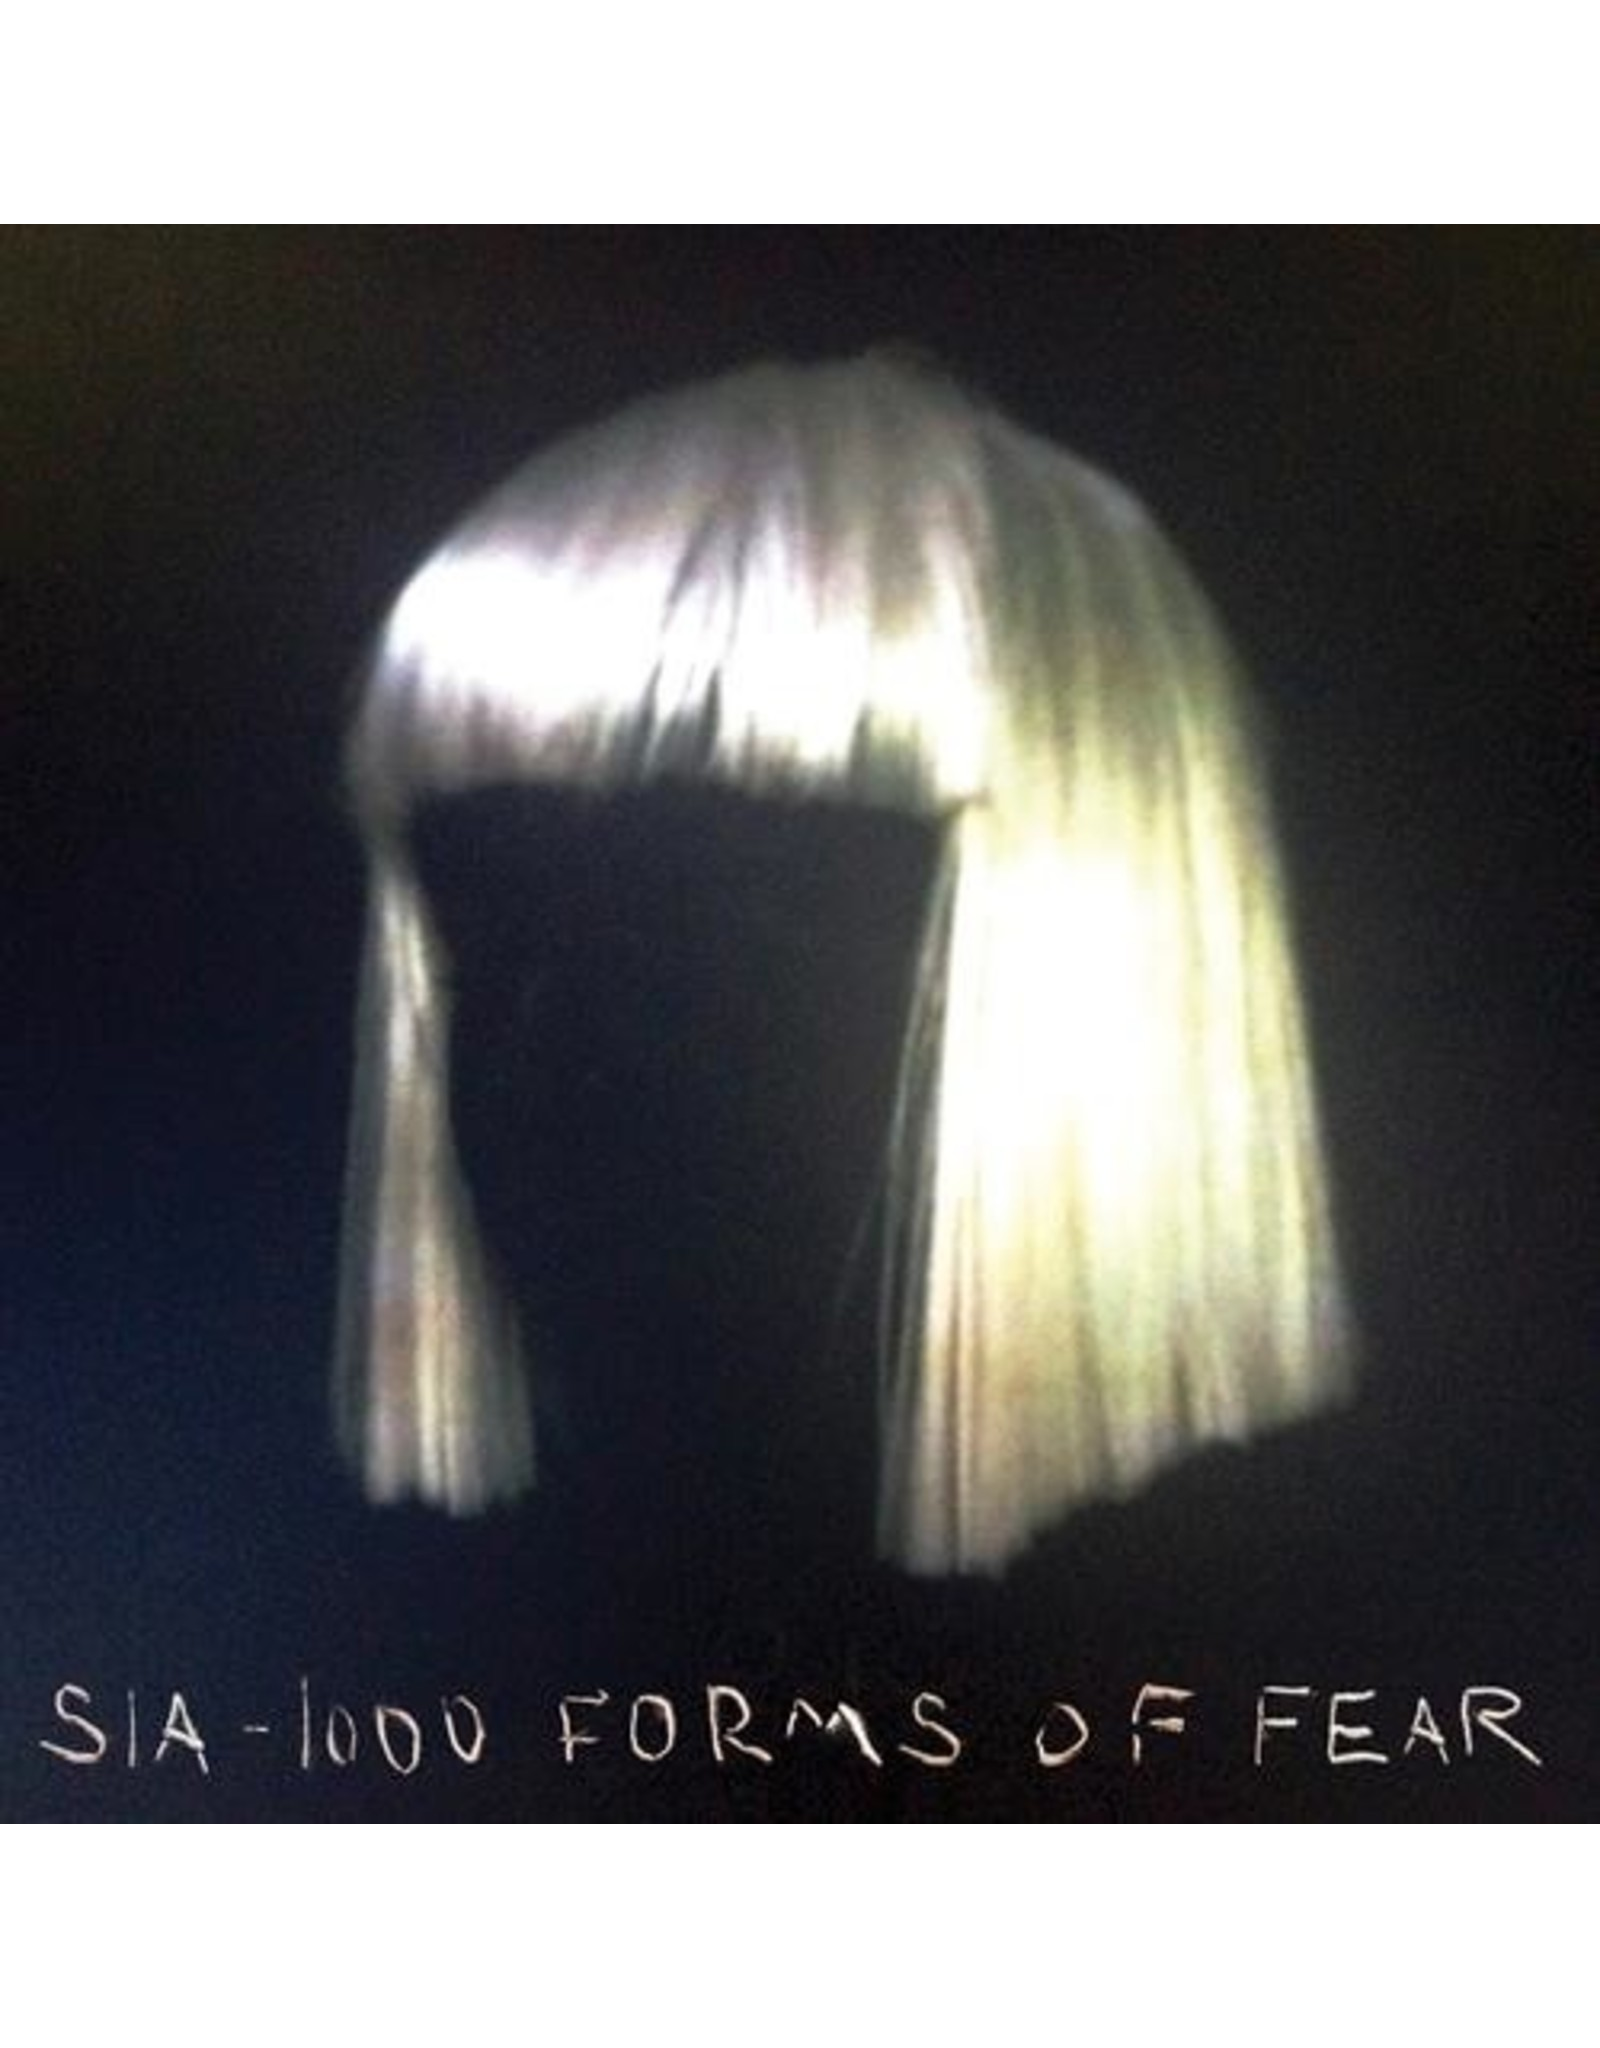 New Vinyl Sia - 1000 Forms Of Fear LP